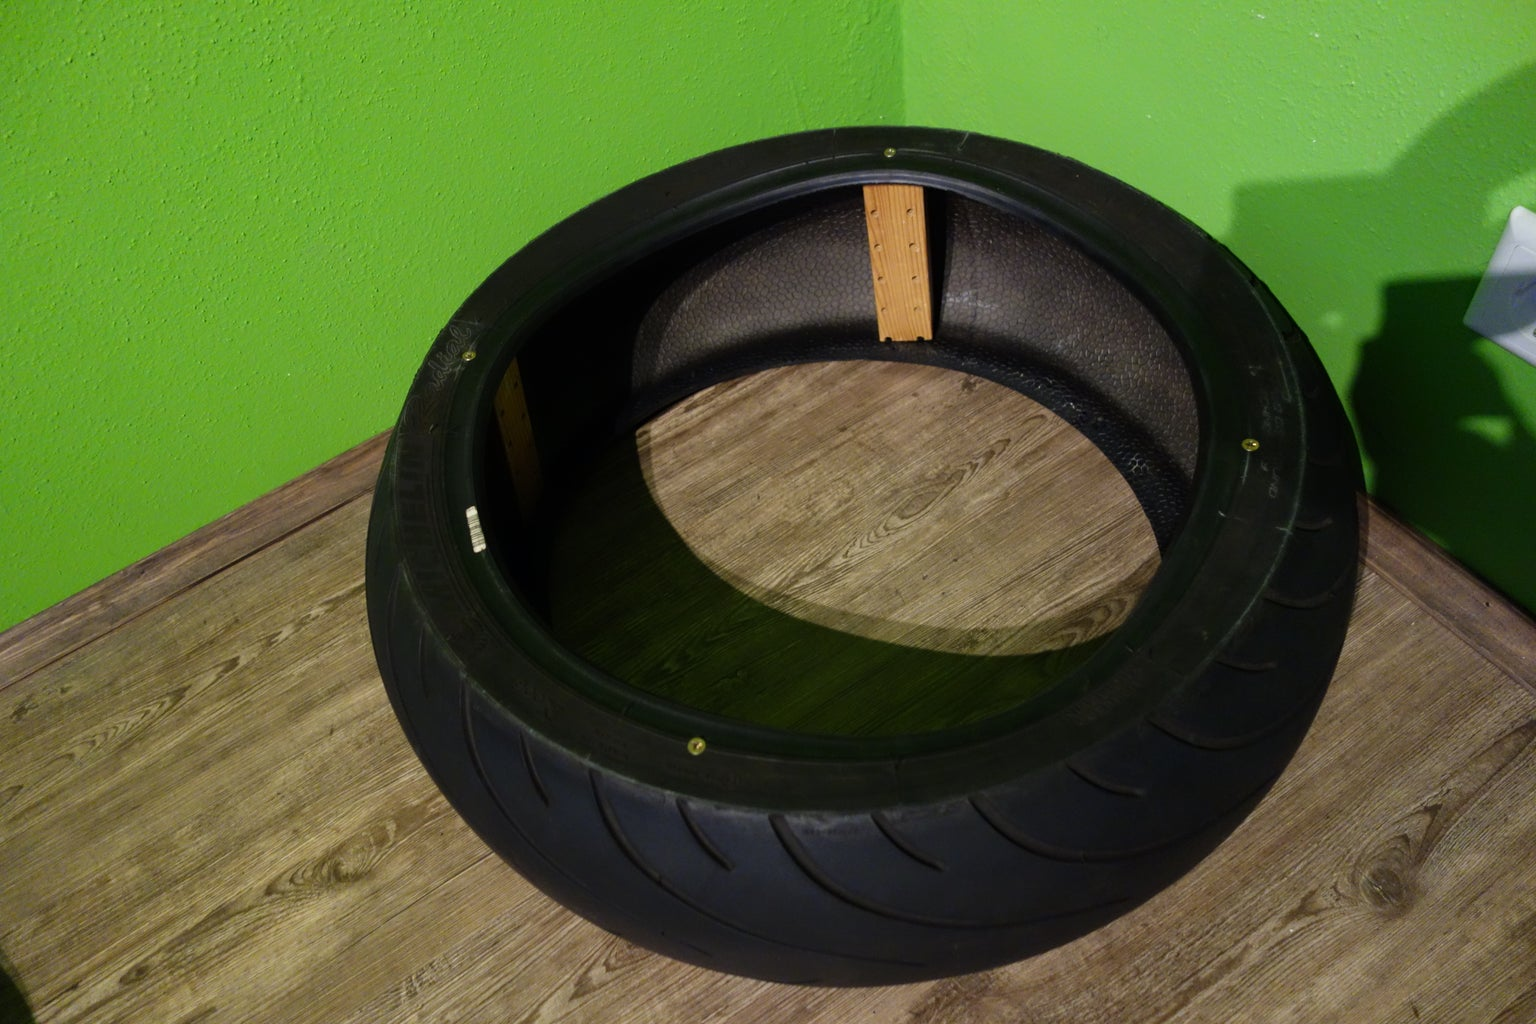 Support for the Lower Tire